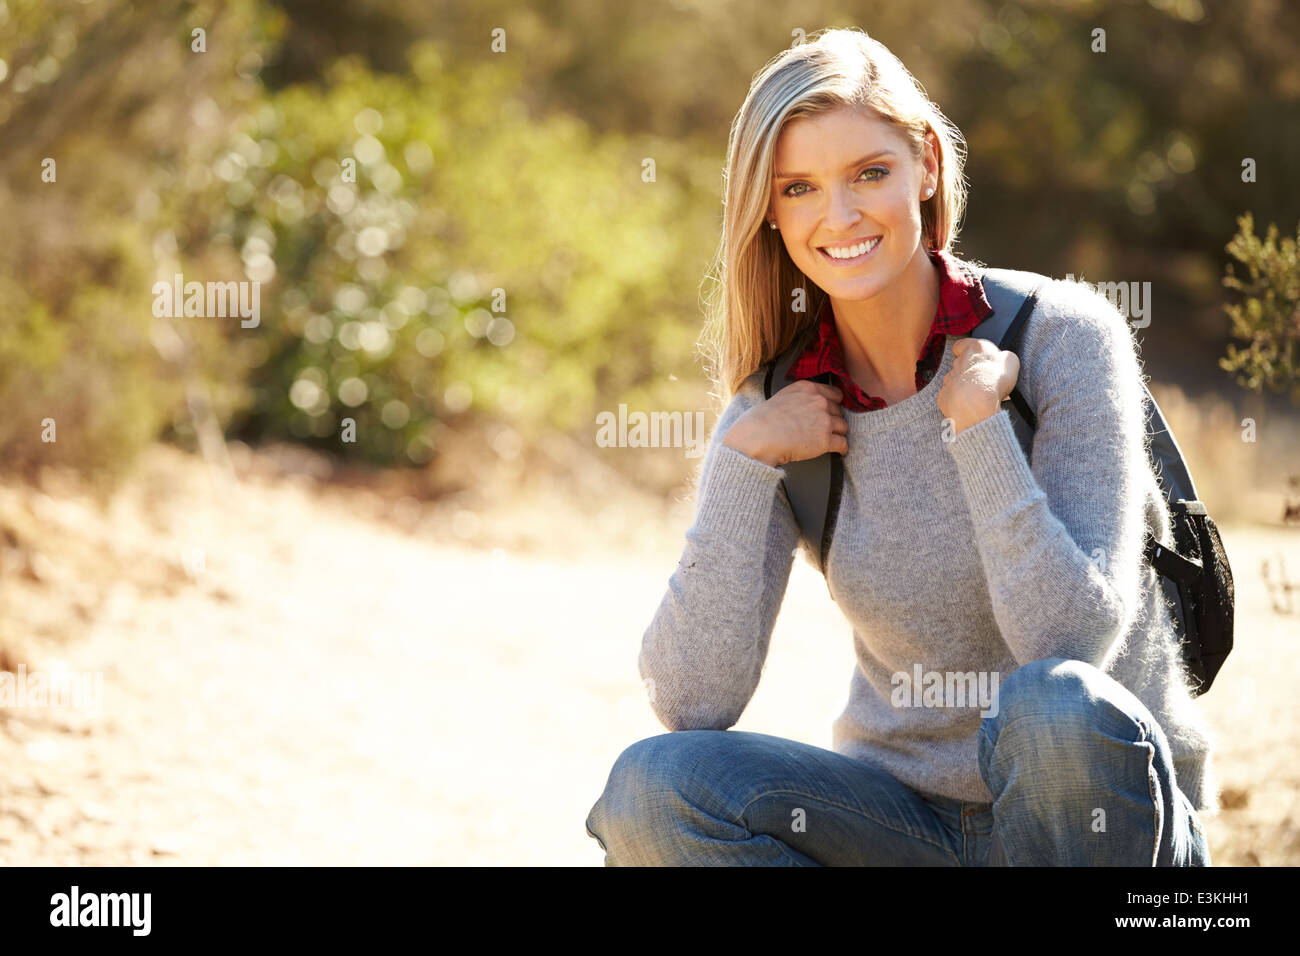 Portrait Of Woman Hiking In Countryside Wearing Backpack - Stock Image